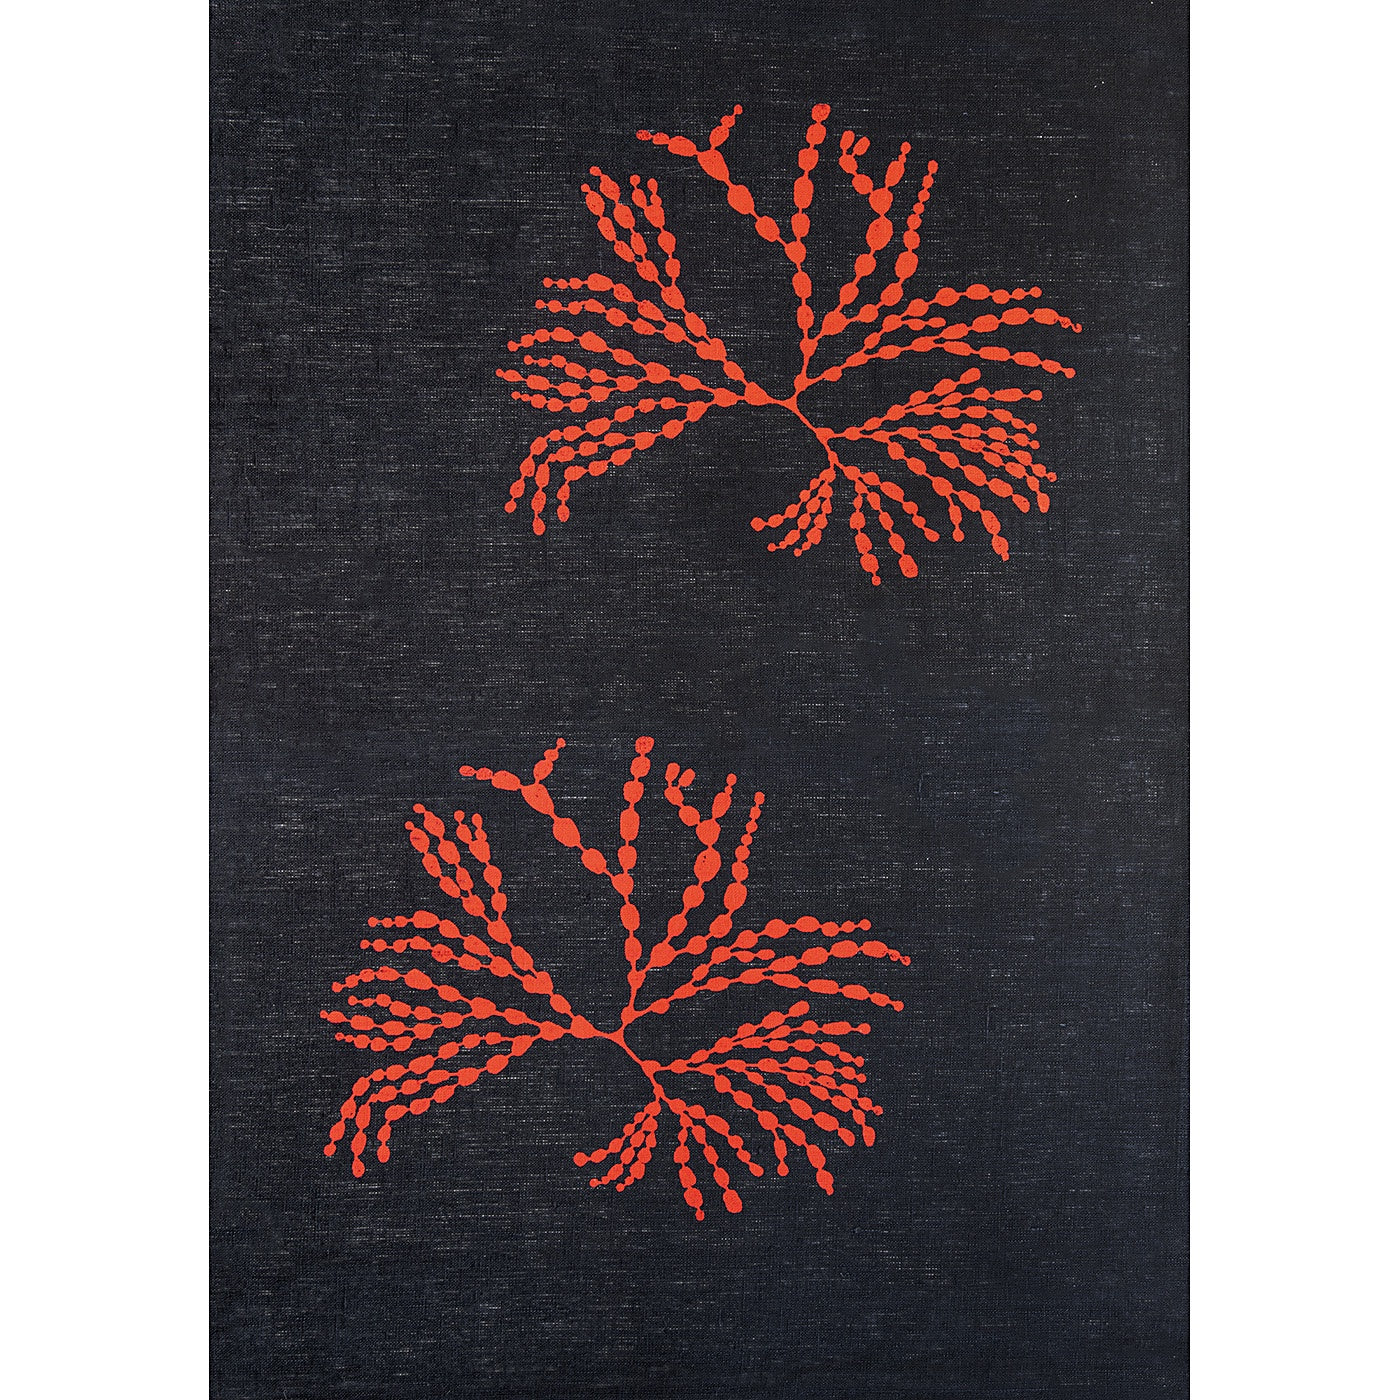 Stalley Textile Co. - Tea Towel - Bubbleweed - Red on Black